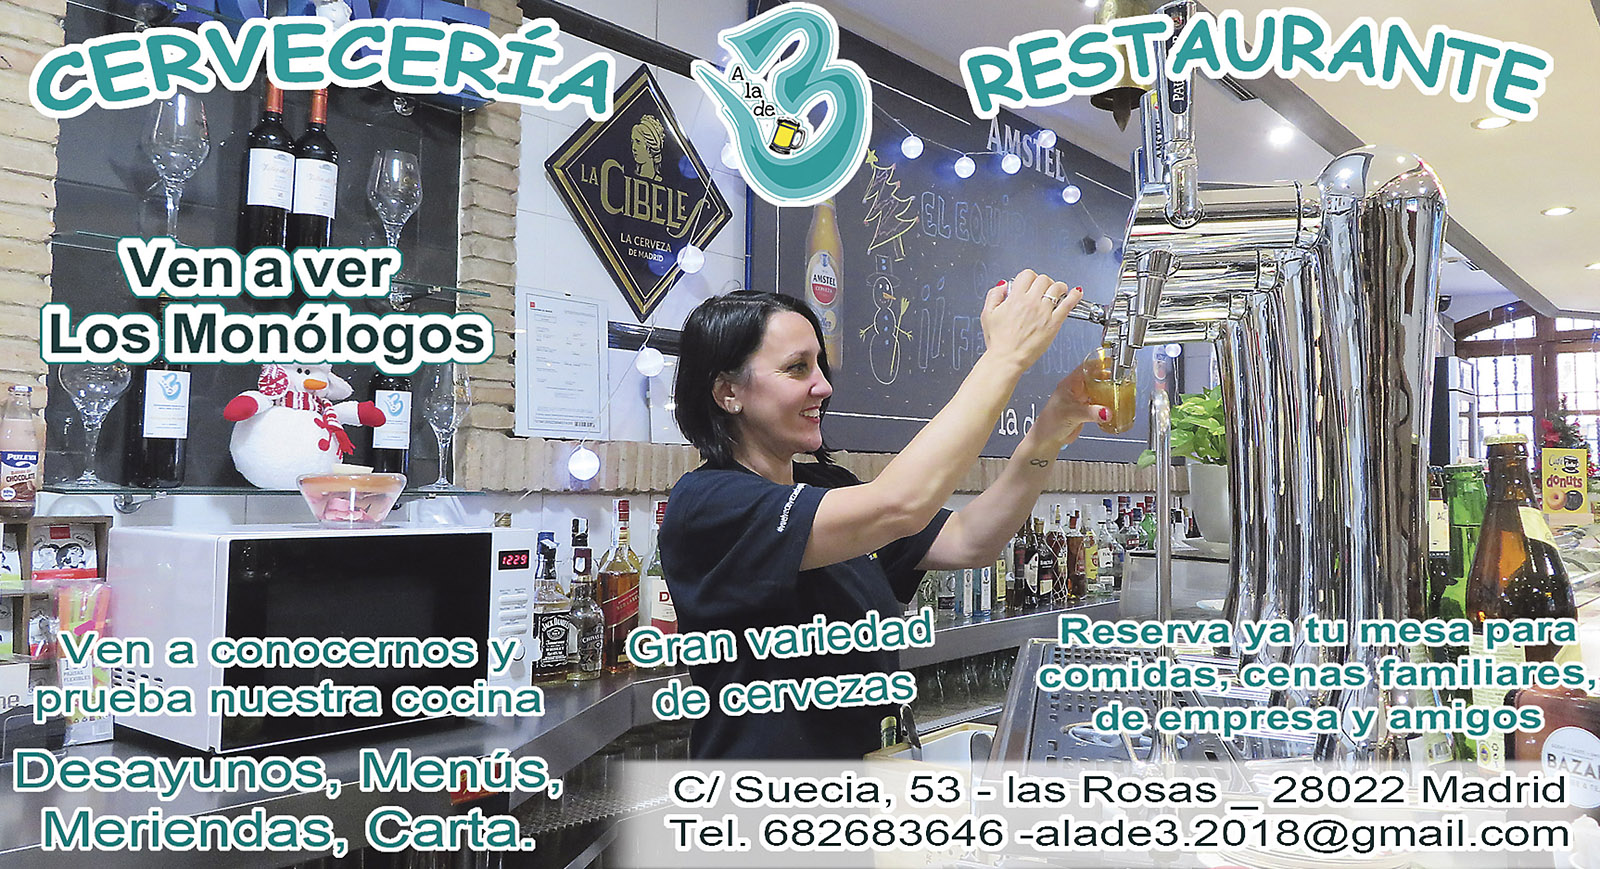 Bar Restaurante Camarero